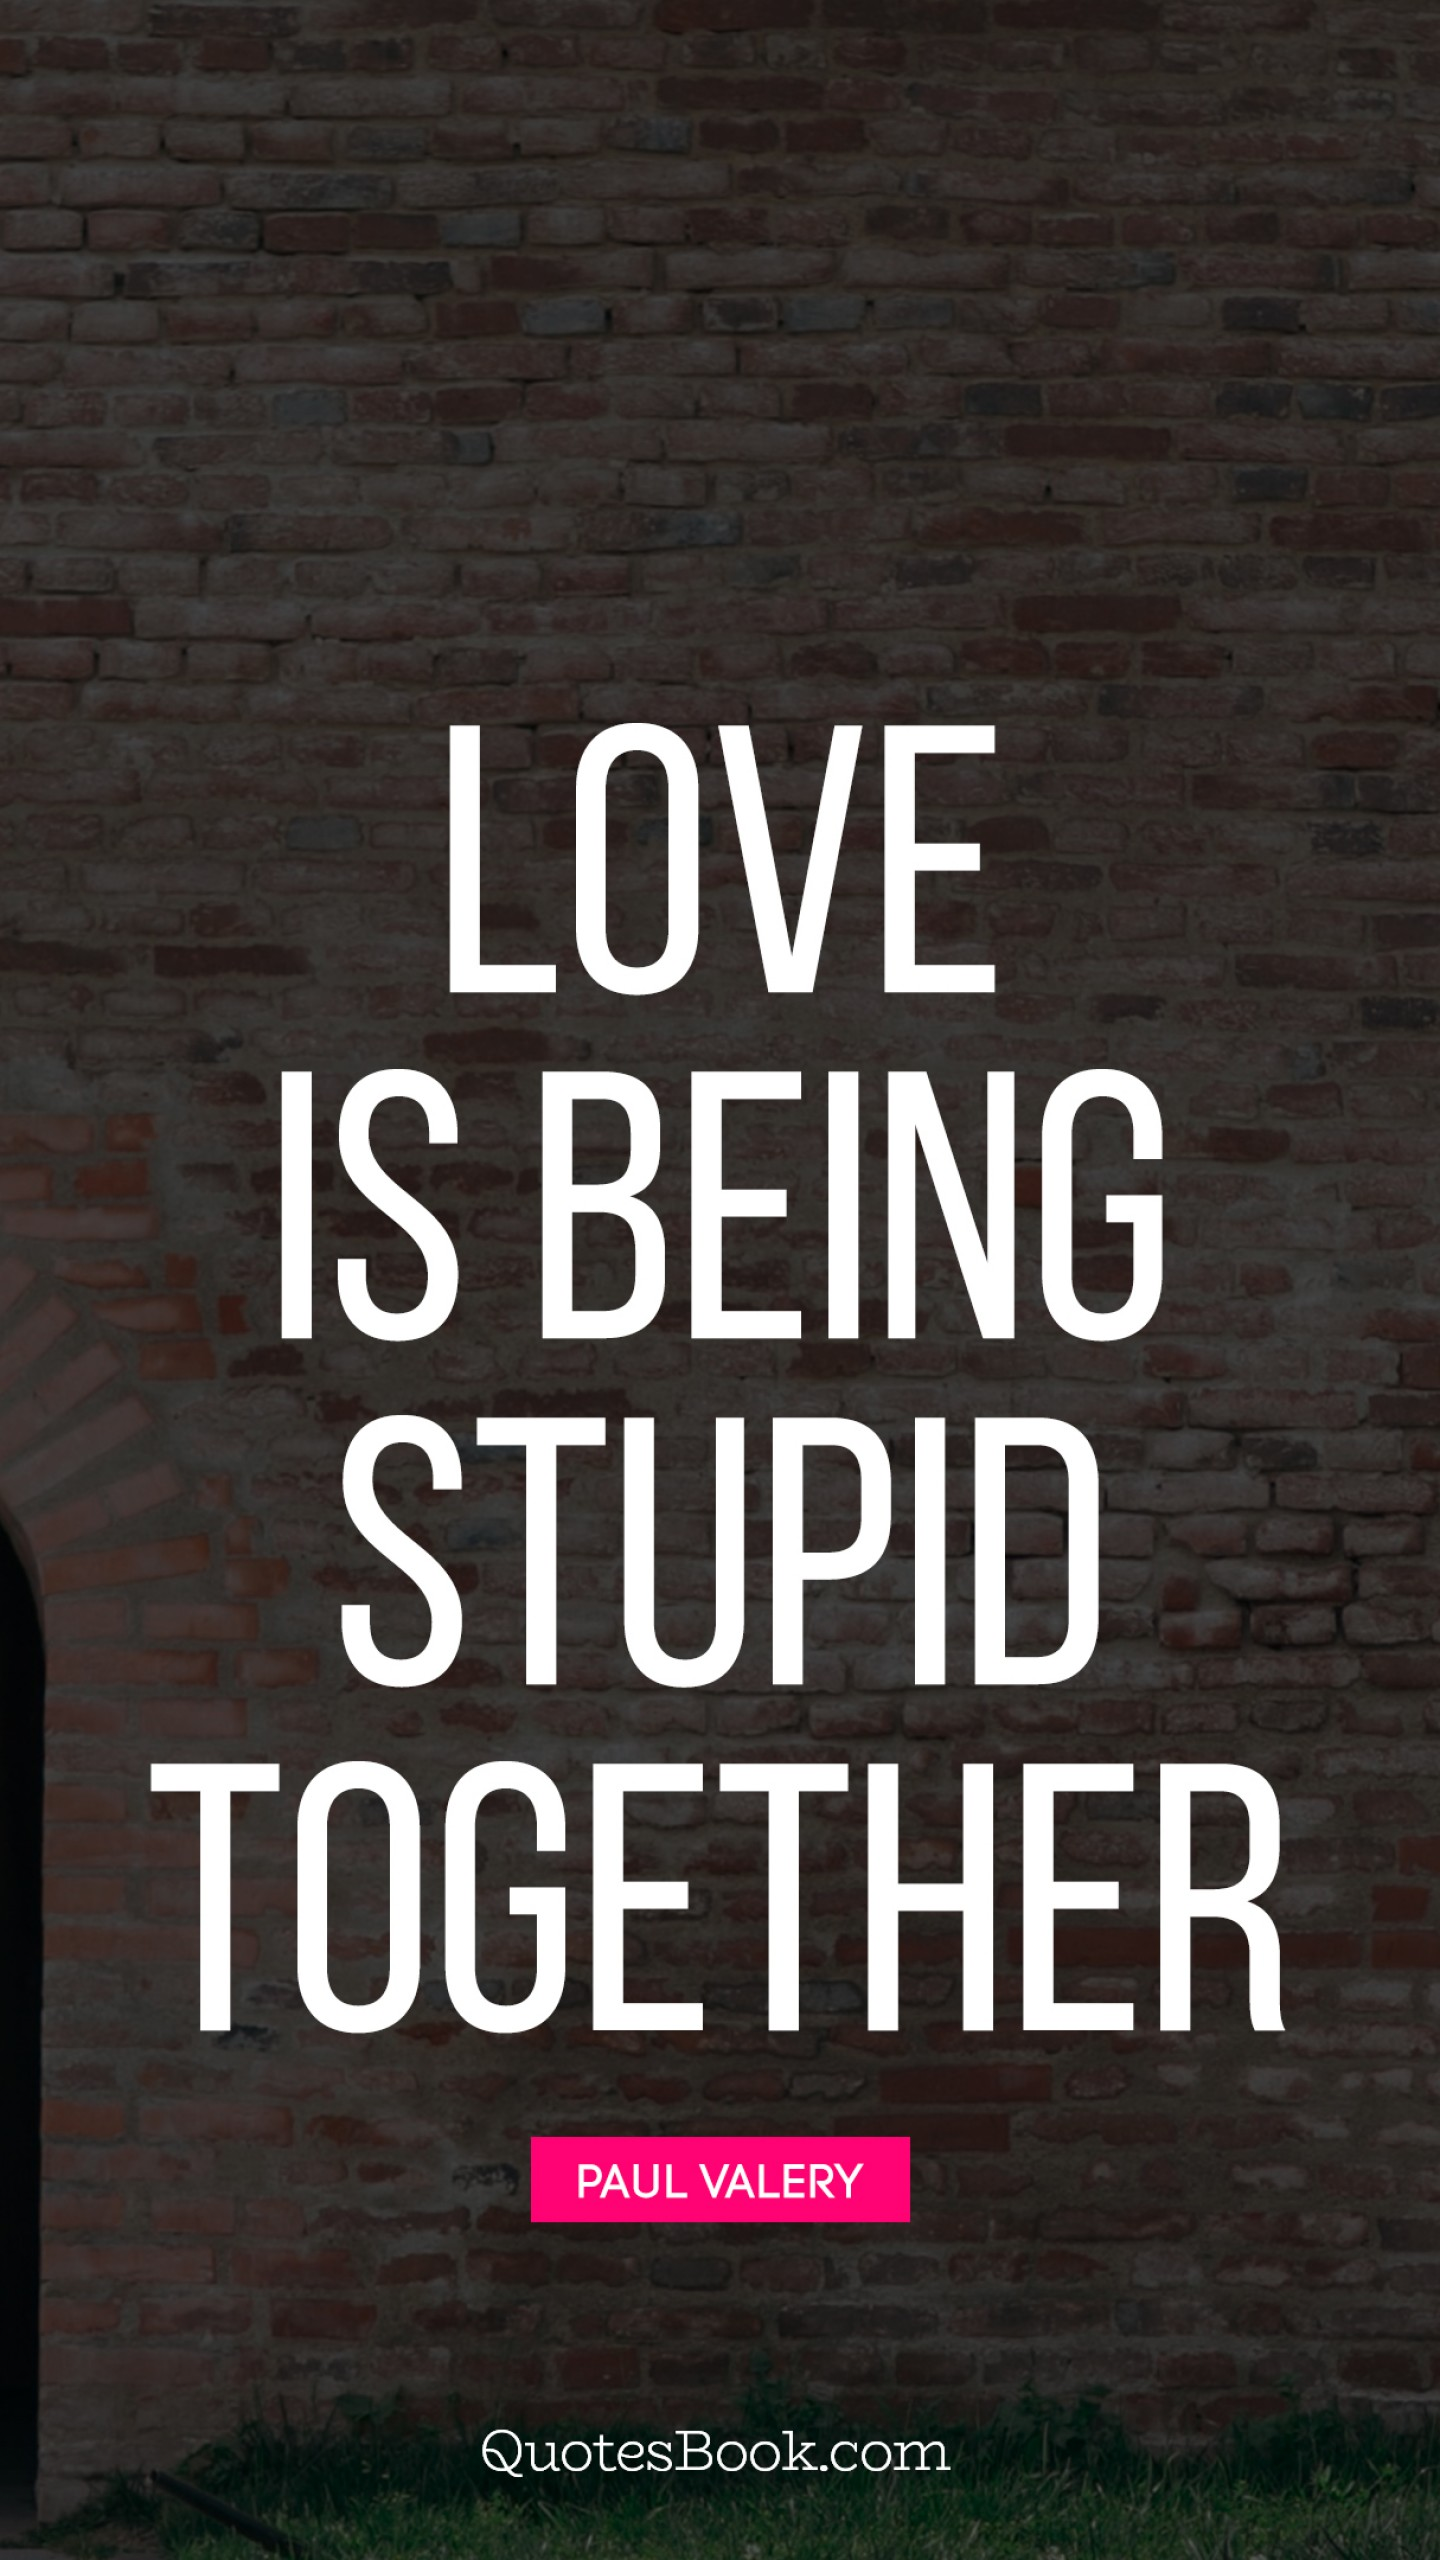 Love is being stupid together. - Quote by Paul Valery - QuotesBook